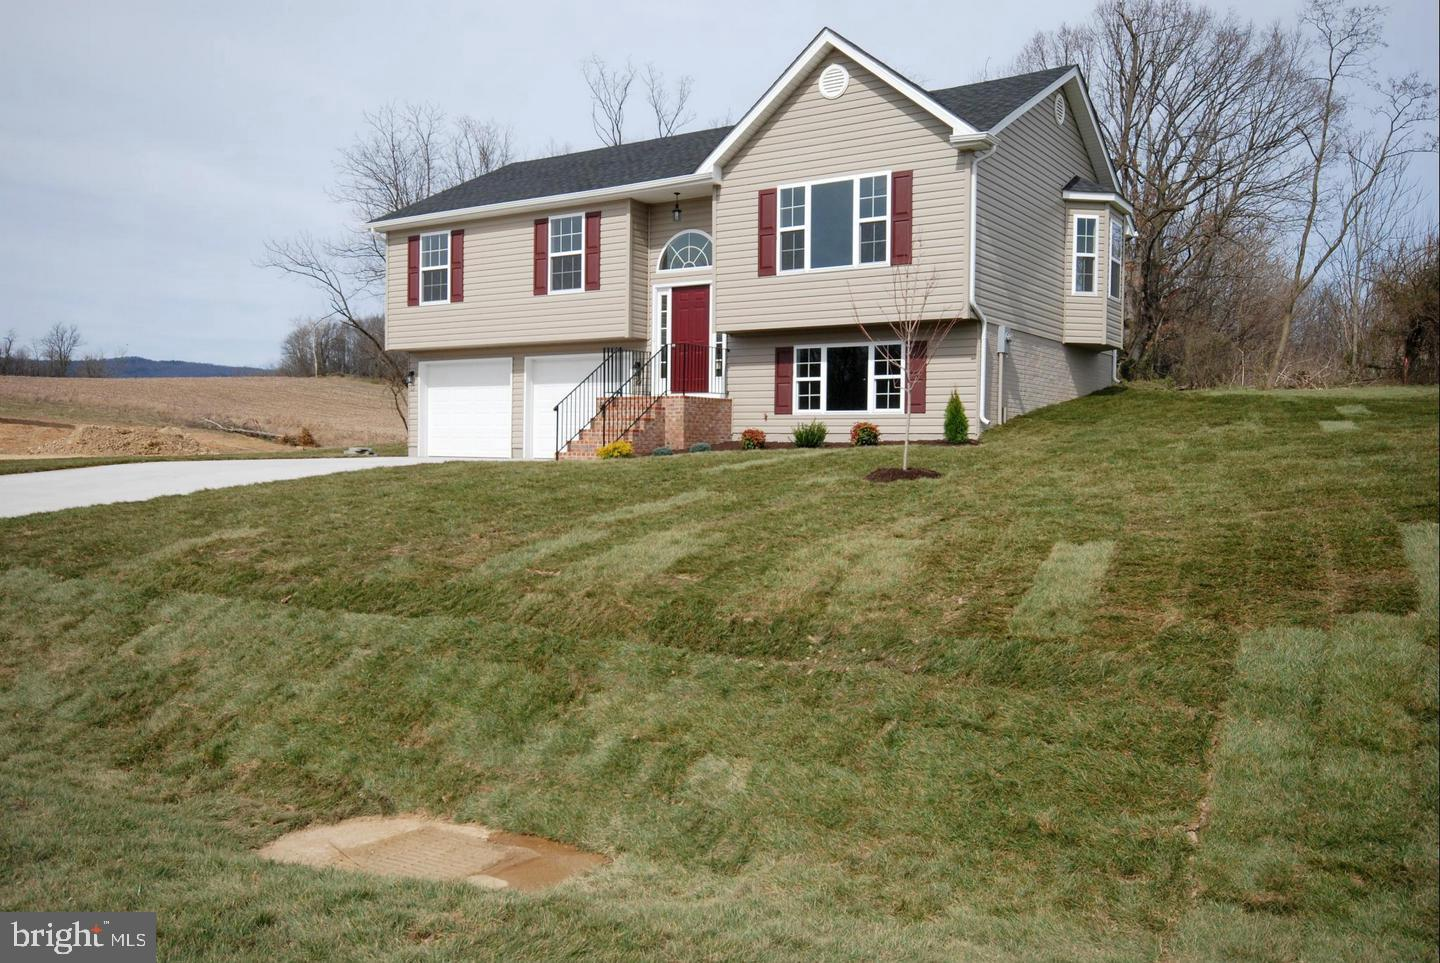 LILLEIGH COURT - LOT 58, MAURERTOWN, VA 22644